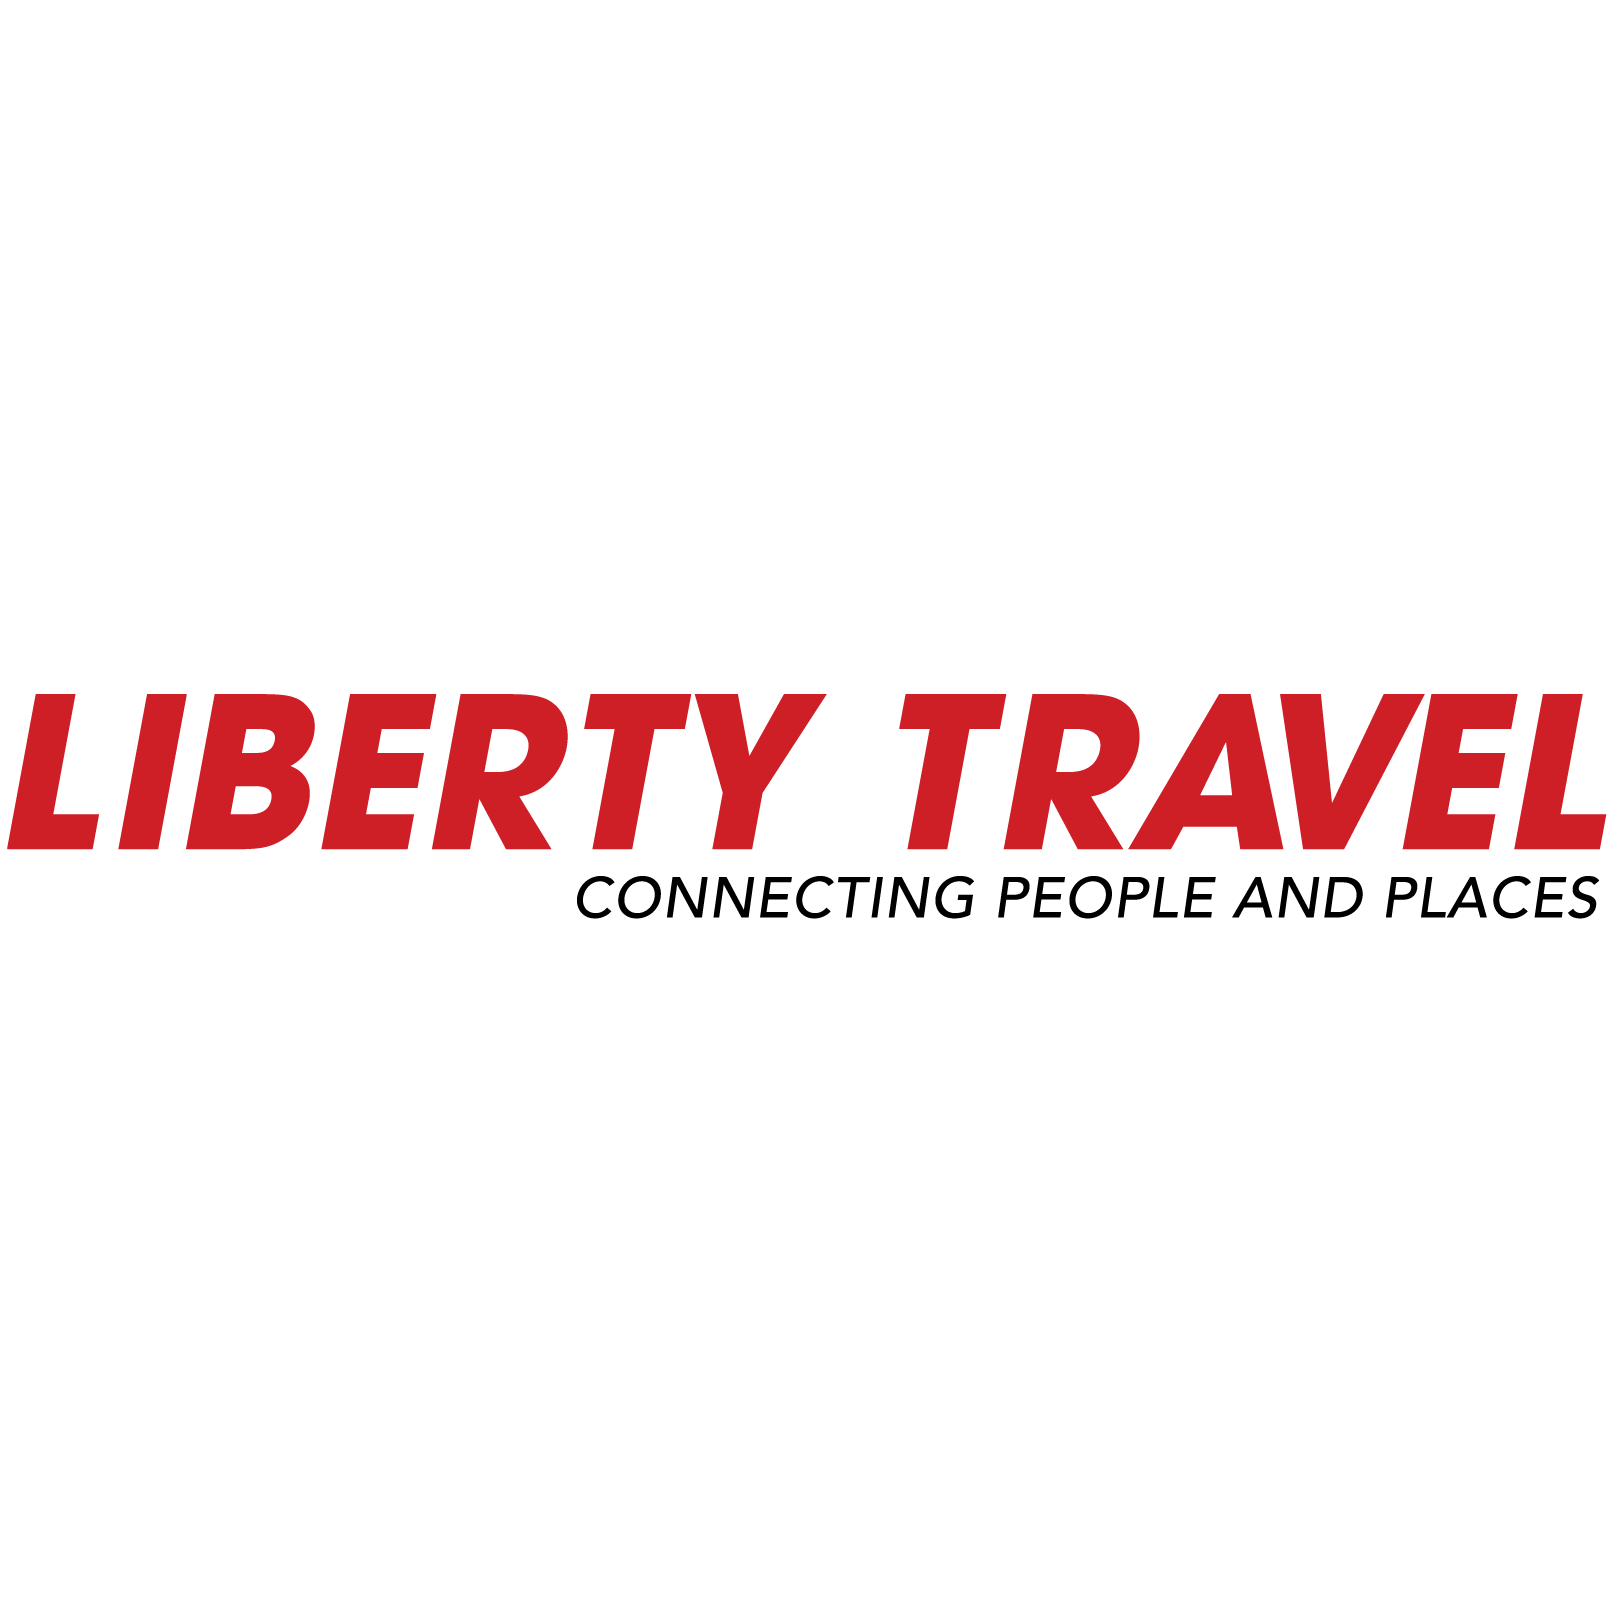 Liberty Travel - Stony Brook, NY - Travel Agencies & Ticketers